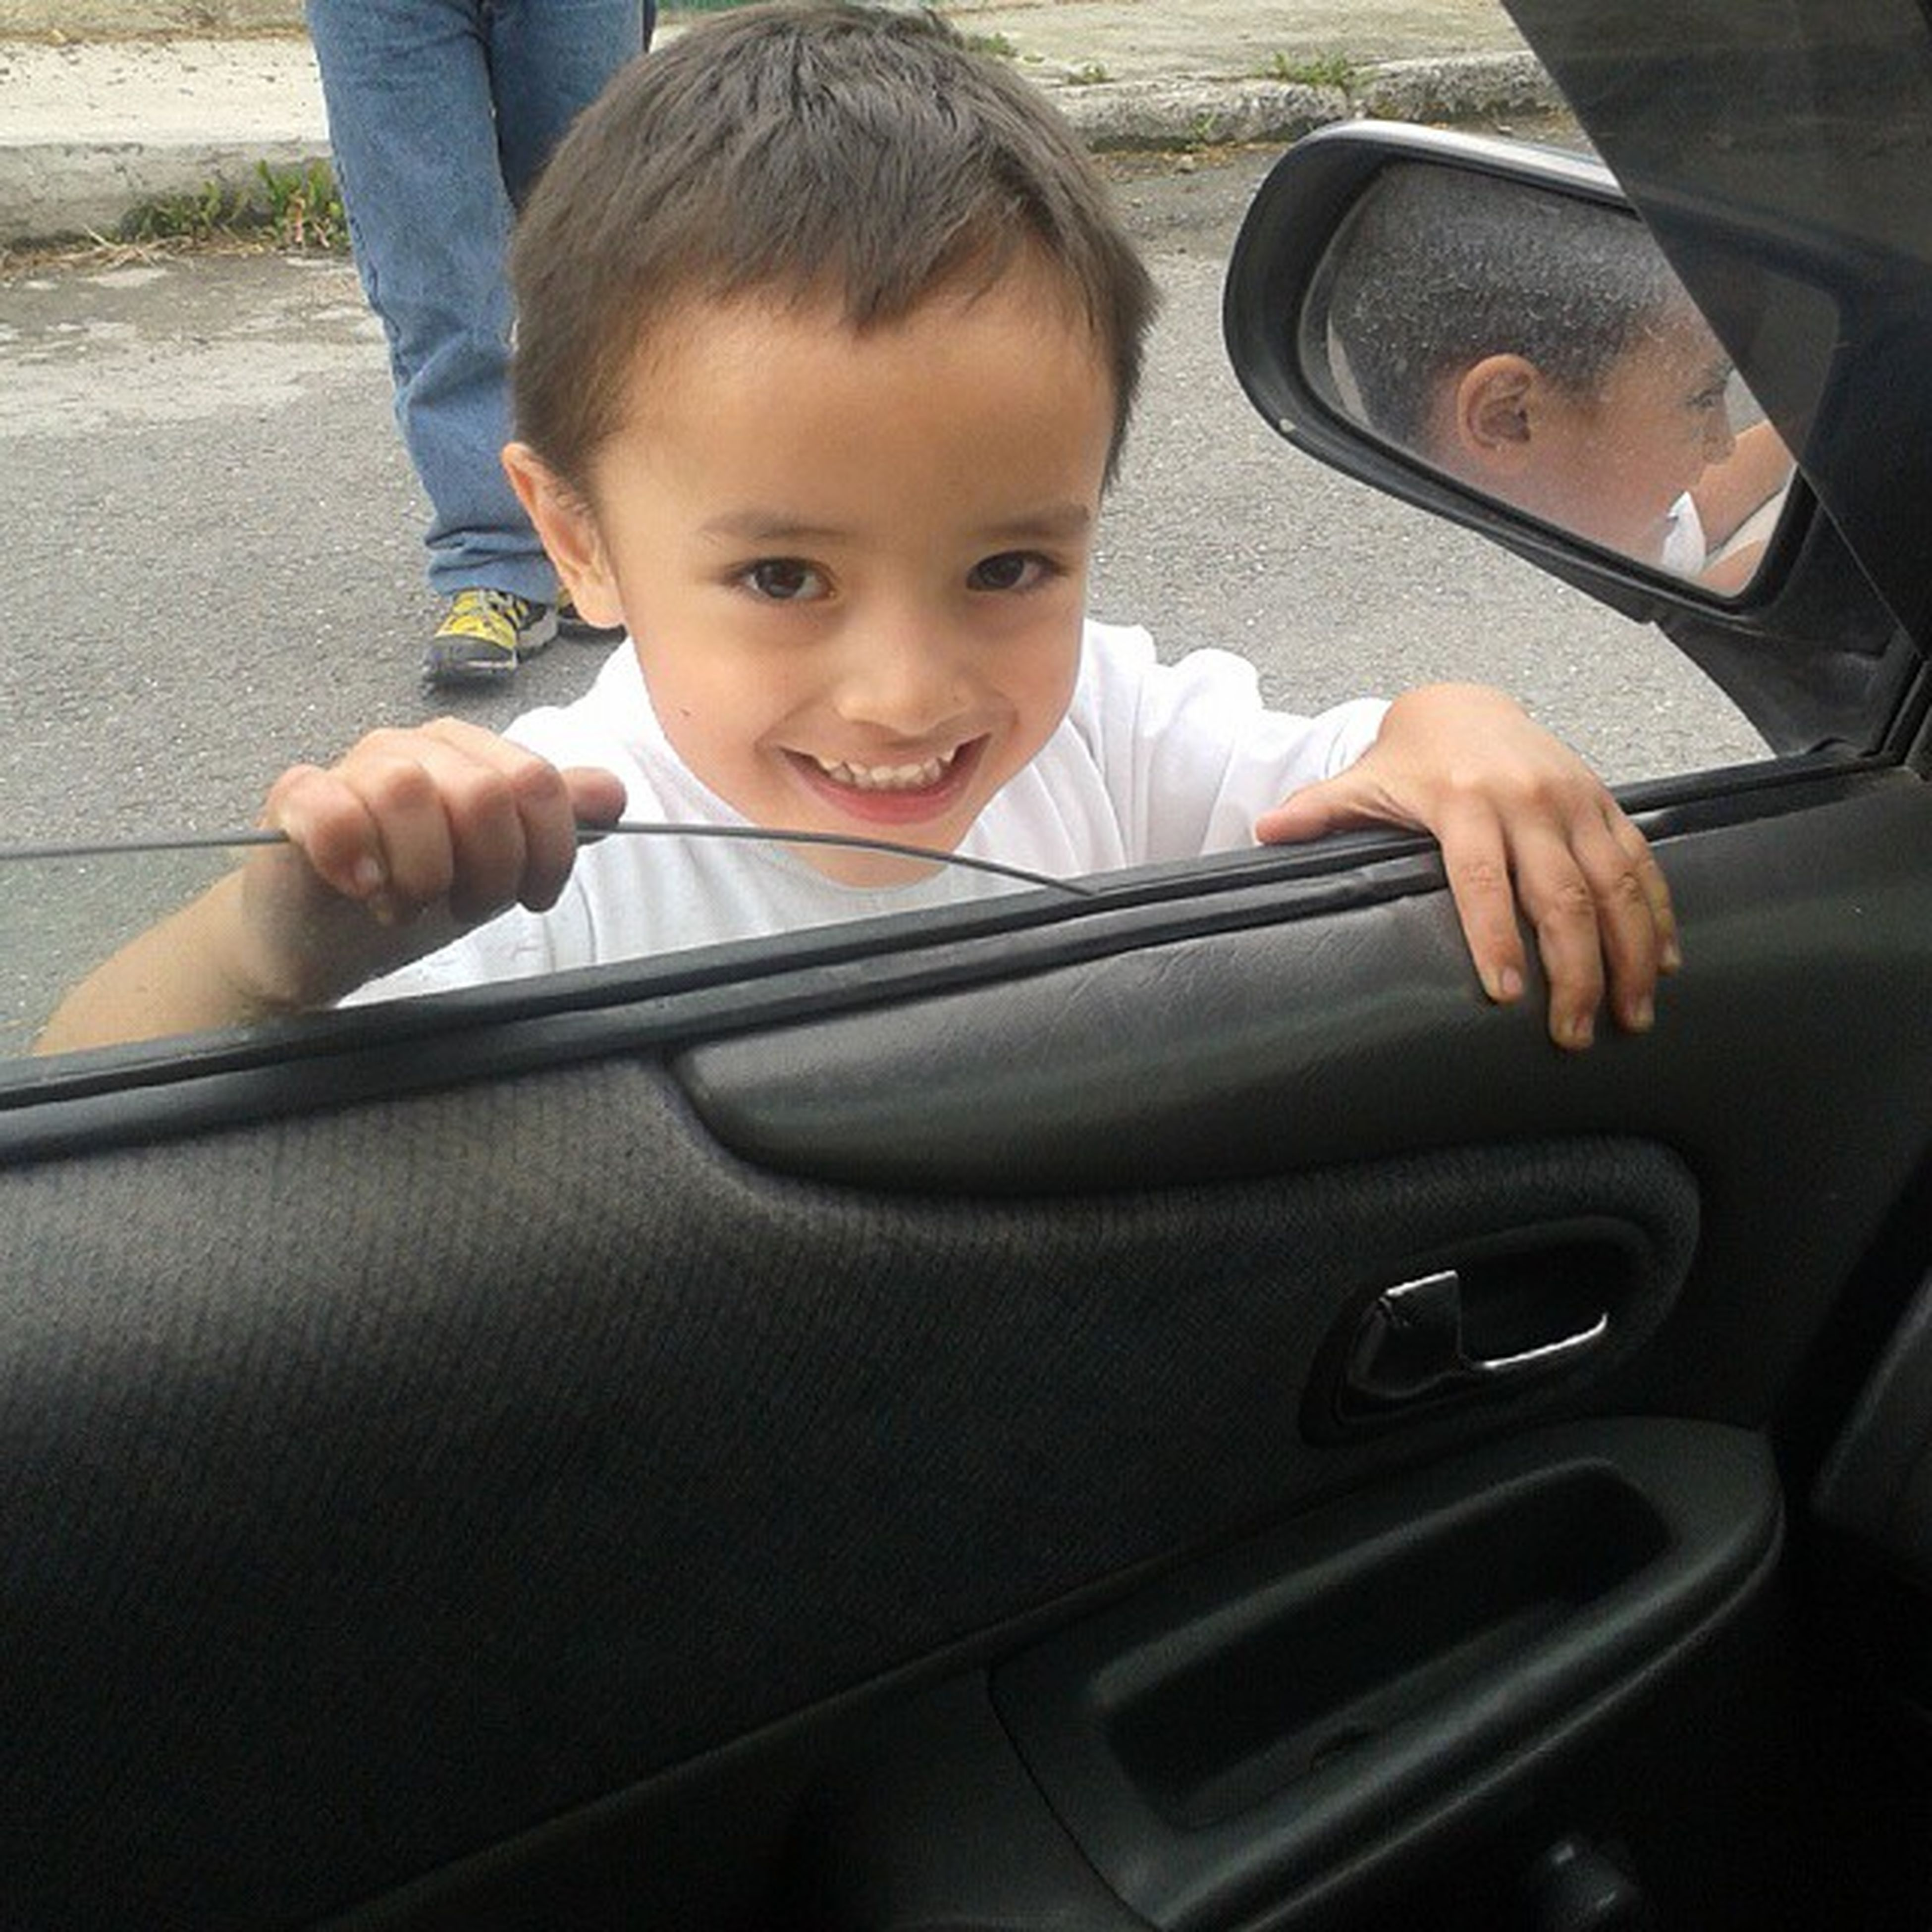 transportation, childhood, indoors, mode of transport, sitting, land vehicle, lifestyles, car, elementary age, boys, holding, leisure activity, innocence, person, casual clothing, cute, vehicle interior, front view